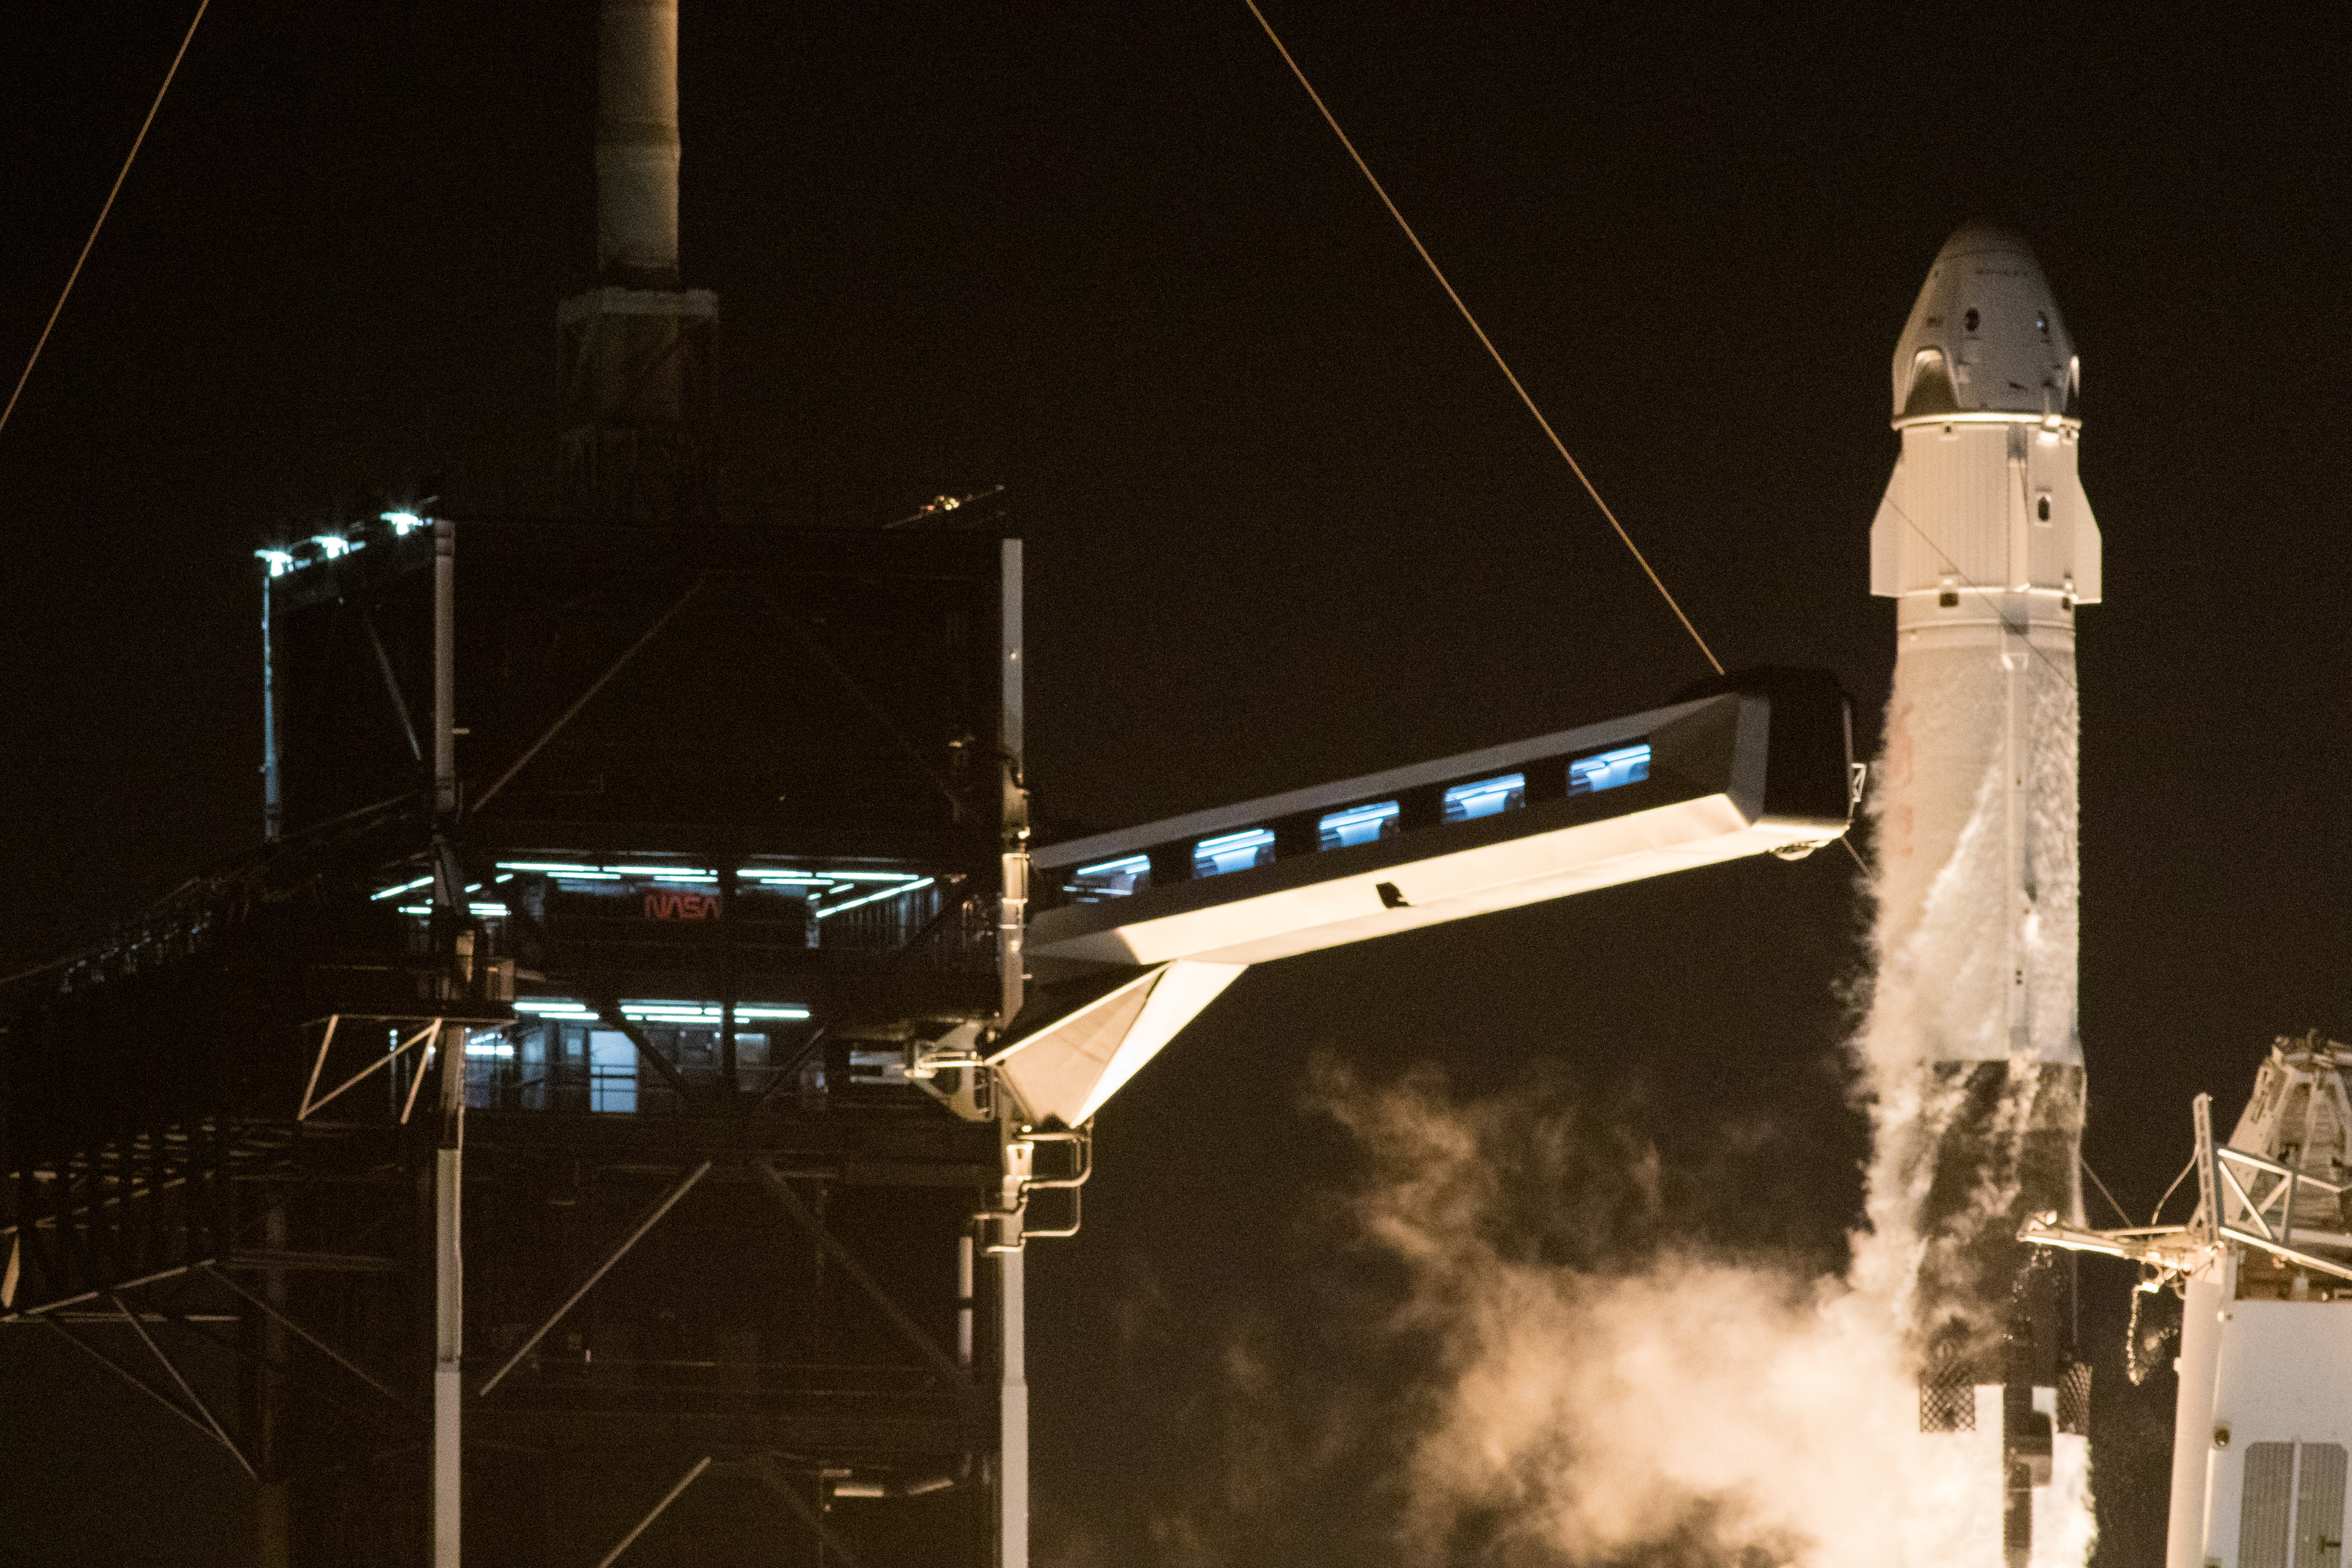 A SpaceX Falcon 9 rocket, topped with the Crew Dragon capsule, is launched carrying four astronauts on the first operational NASA commercial crew mission at Kennedy Space Center in Cape Canaveral, Florida, U.S. November 15, 2020. NASA/Joel Kowsky/Handout via REUTERS